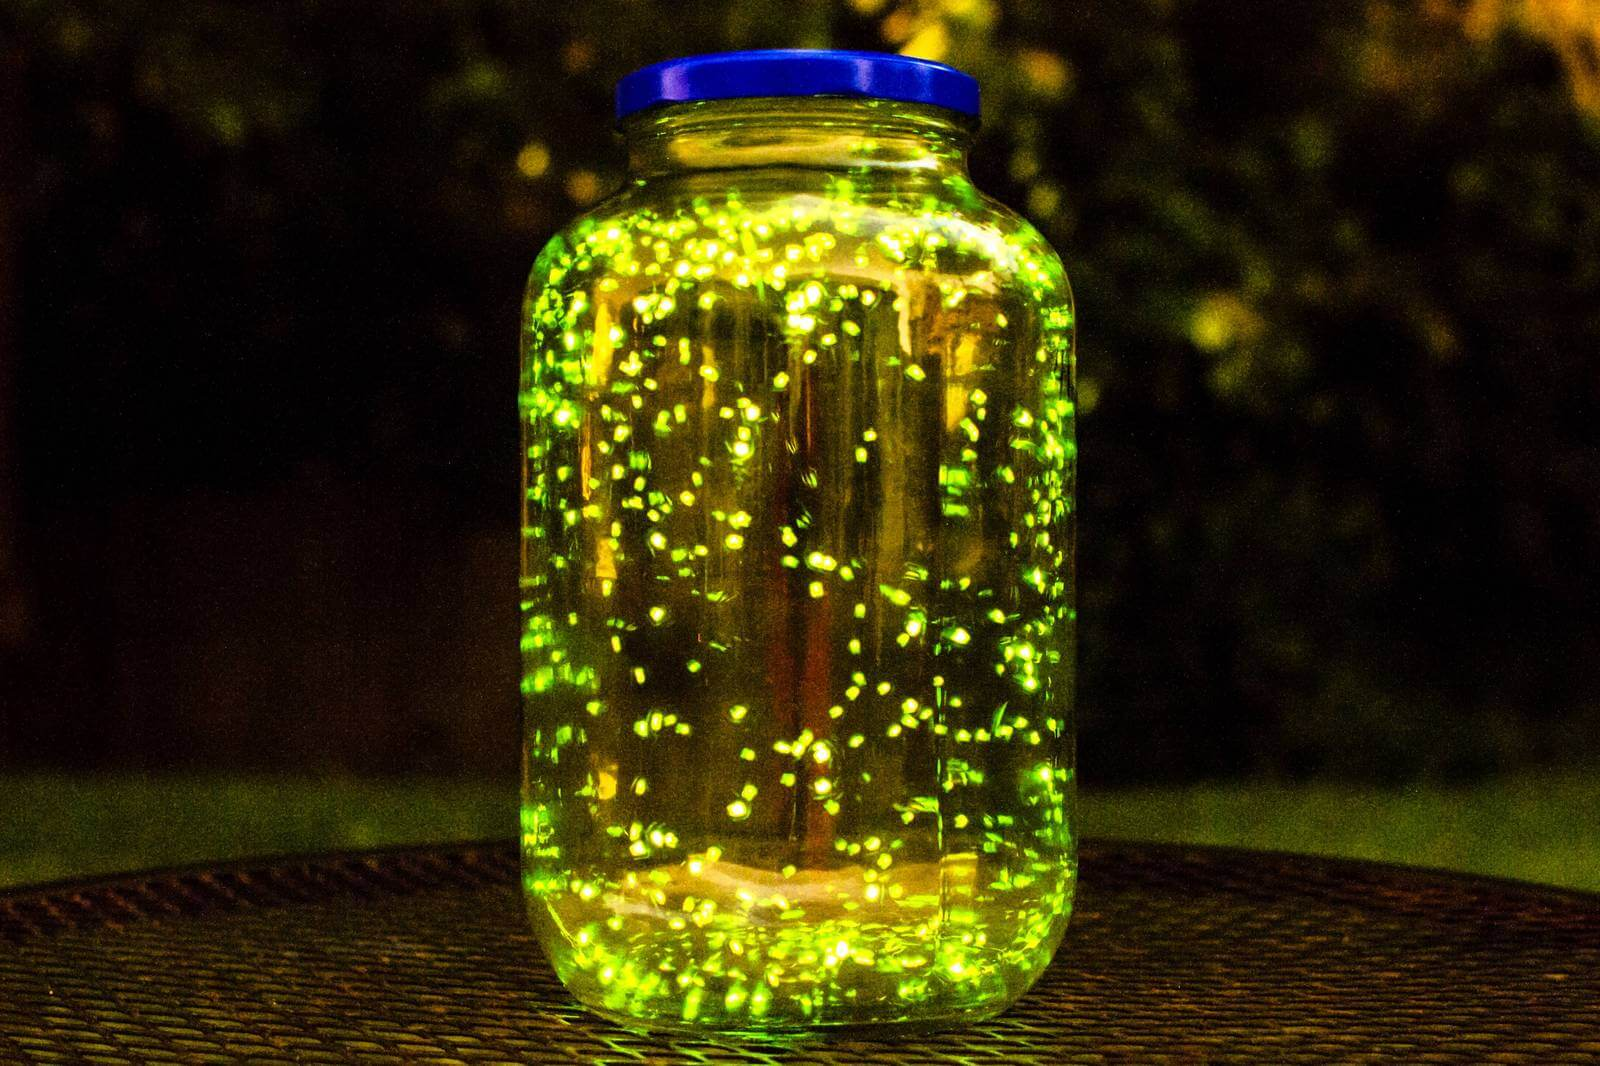 Environmentalists have warned about the possible disappearance of the fireflies